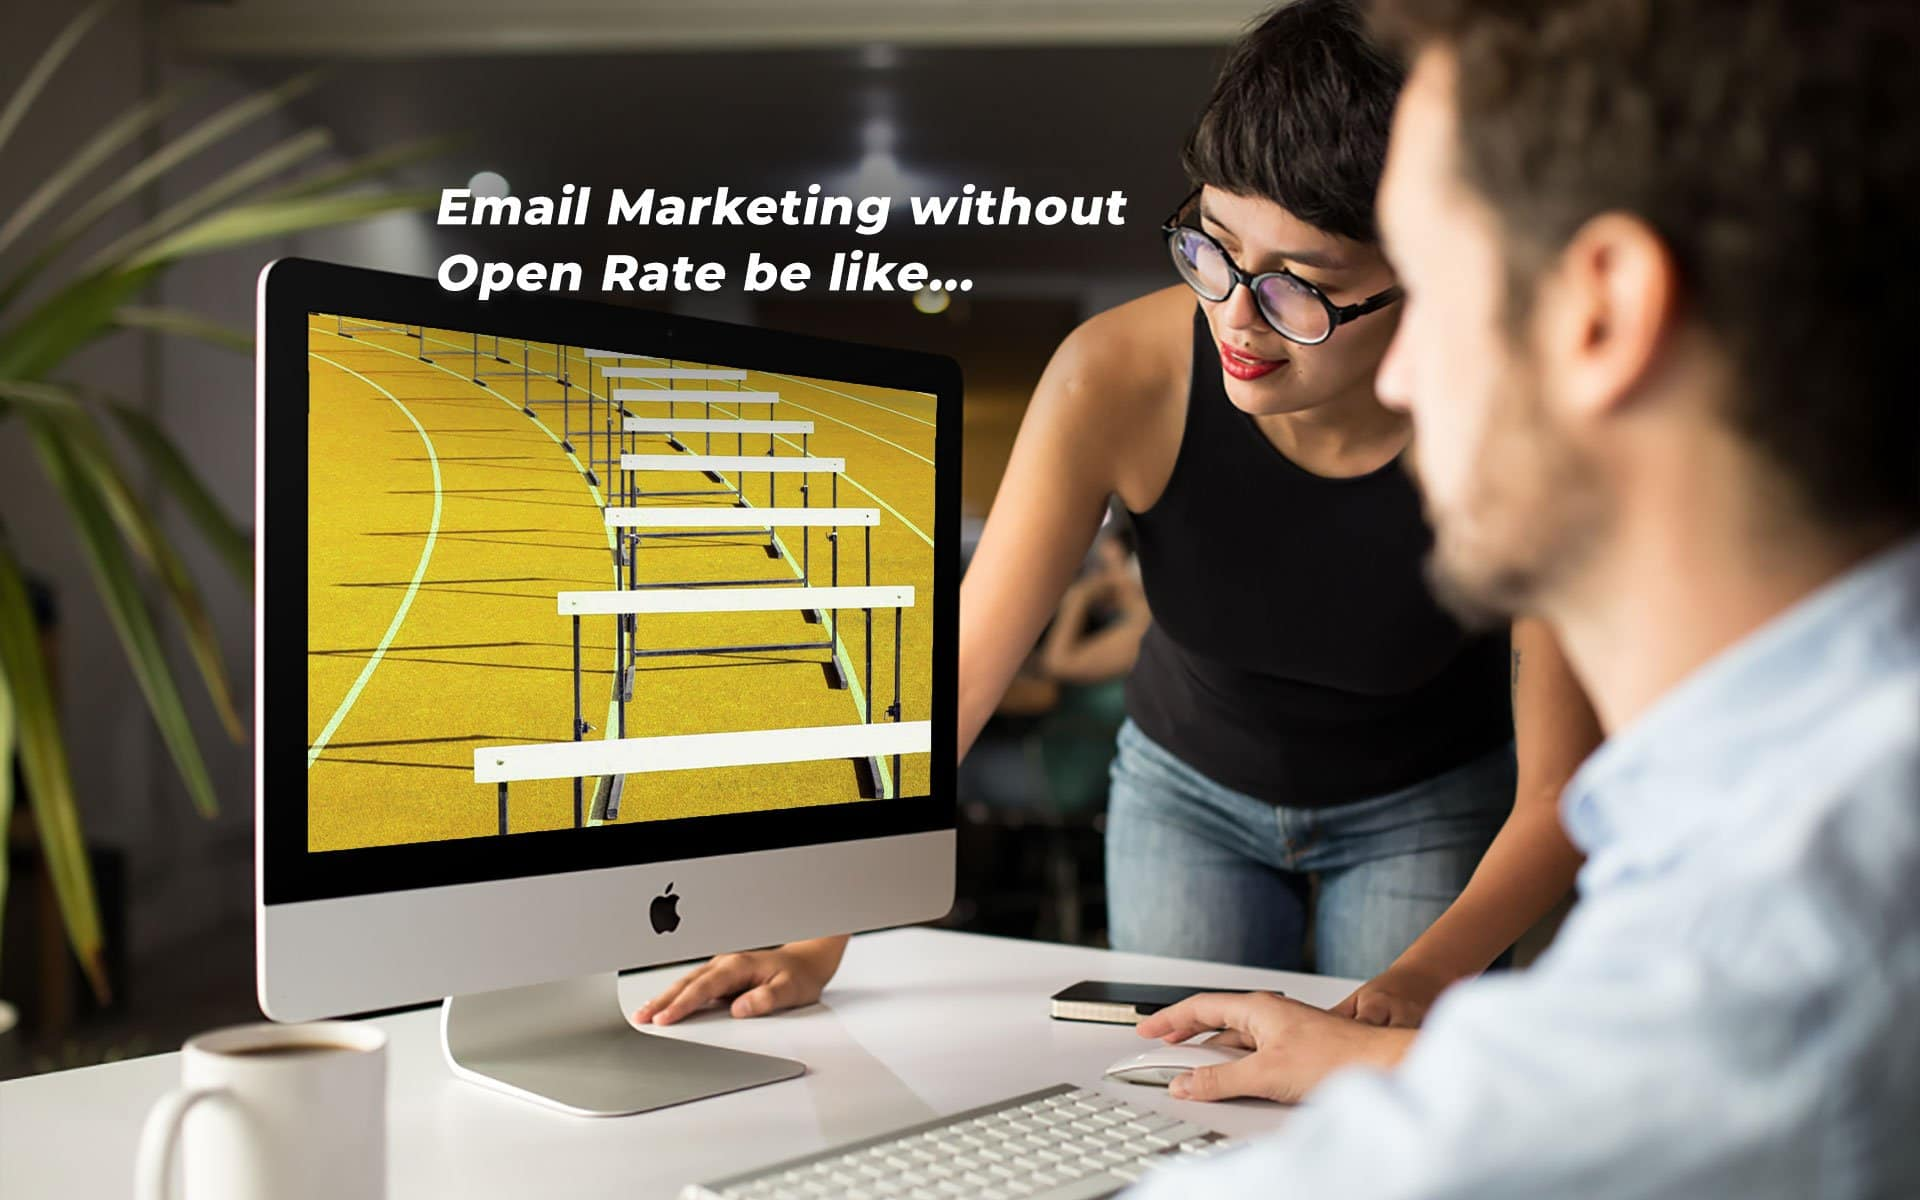 Email Marketing without Open Rate